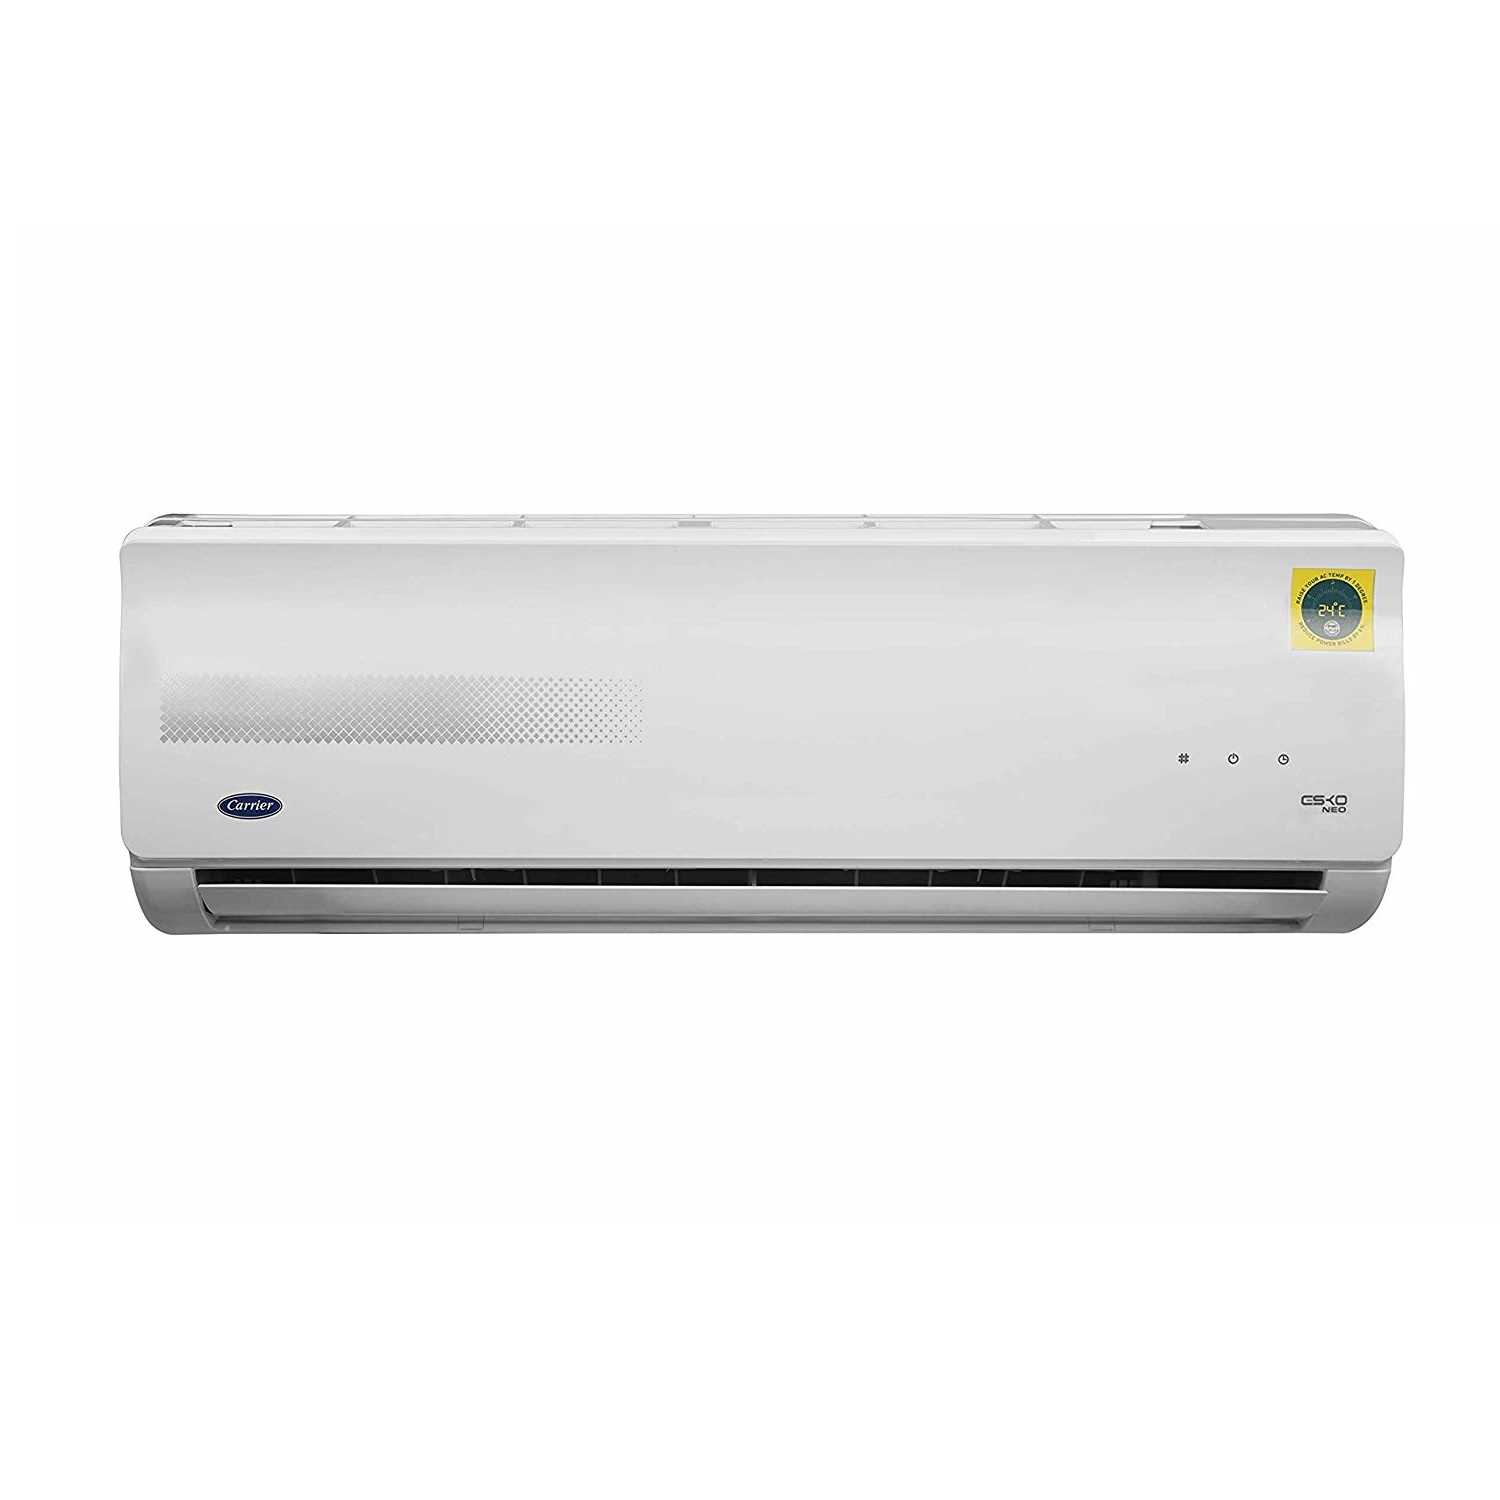 Carrier 18K Esko Neo 1.5 Ton 3 Star Split AC